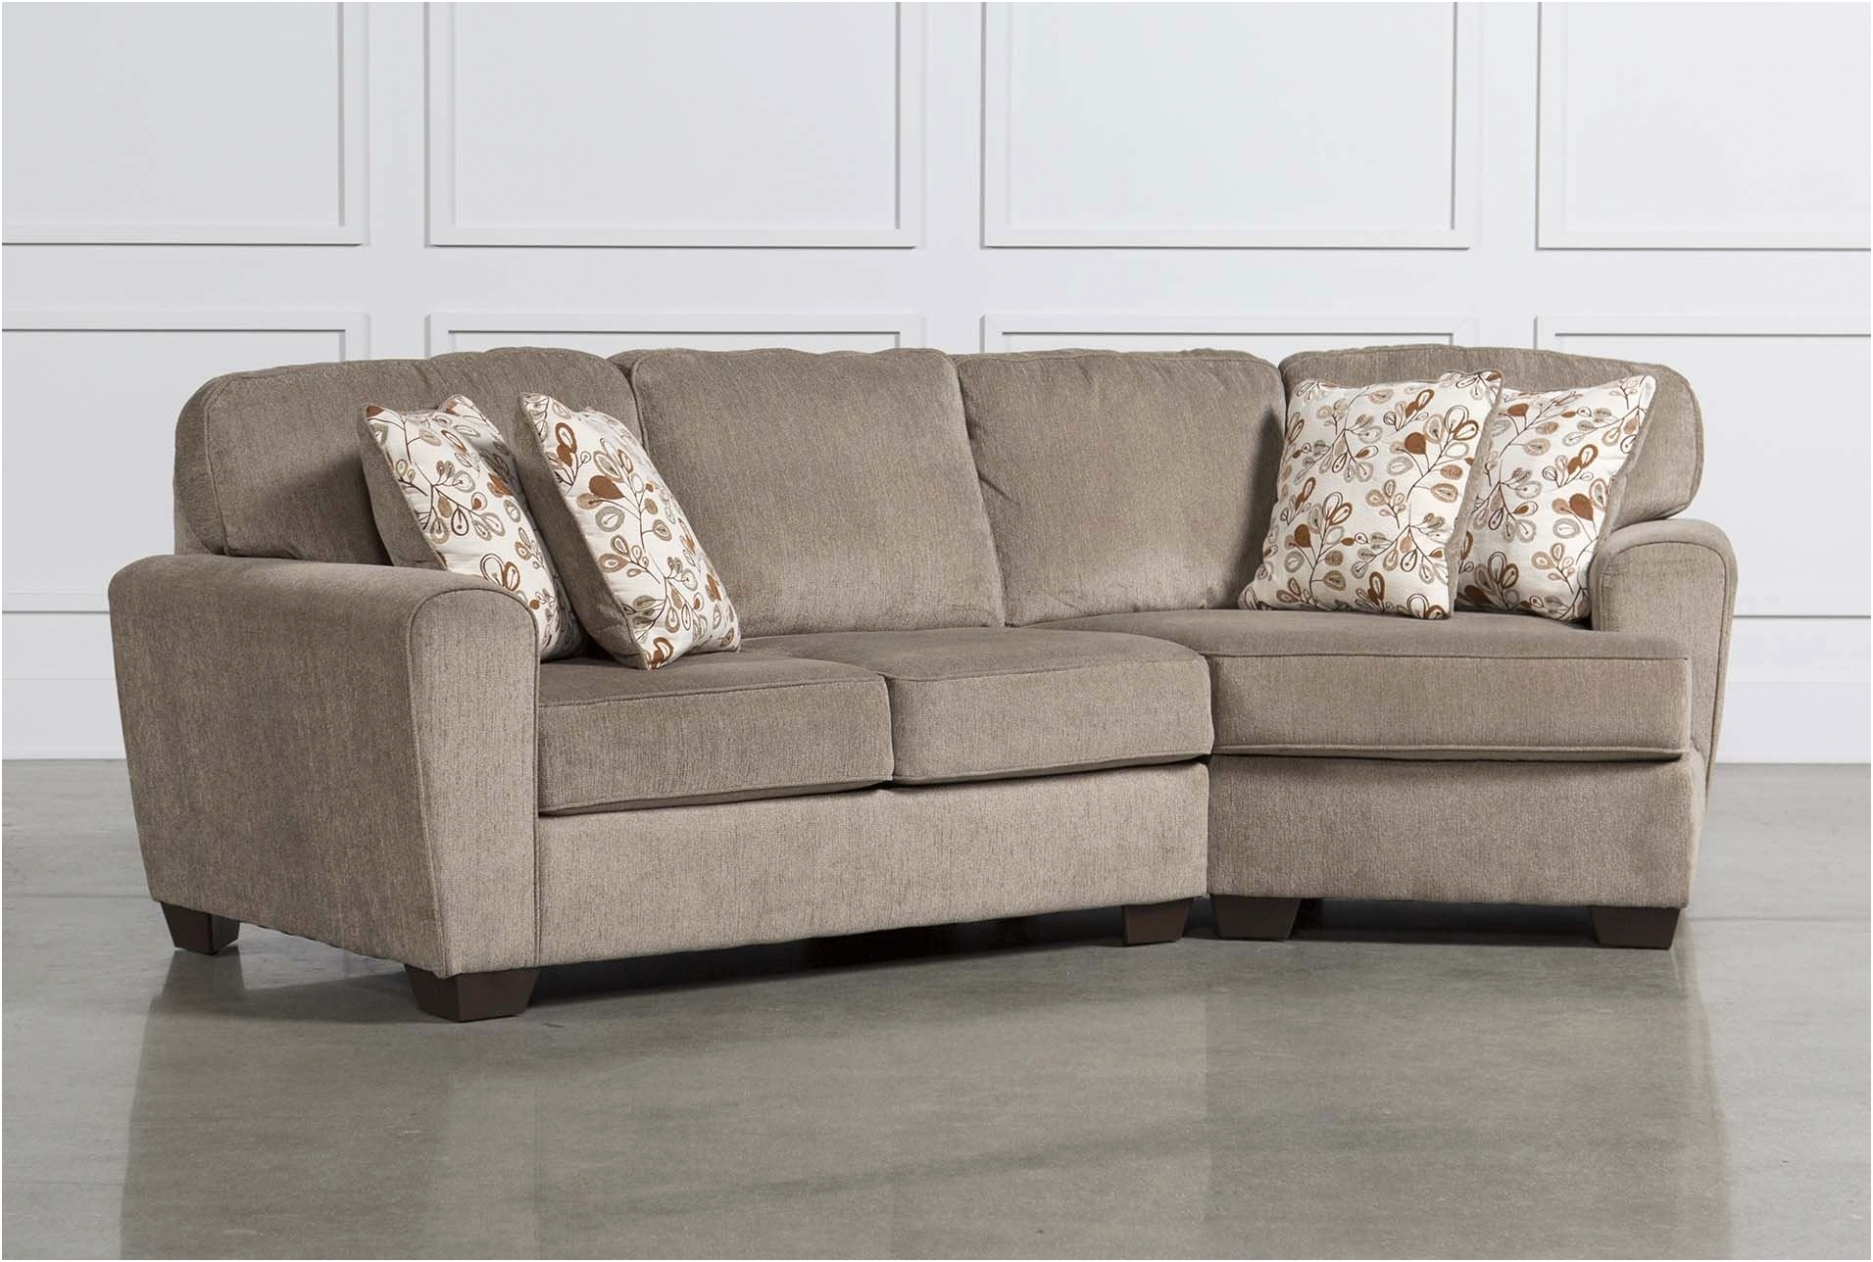 Latest Living Spaces Sectional Sofas Within Furniture: Fresh Sectional Sofa With Cuddler Chaise New – Sofa (View 3 of 15)